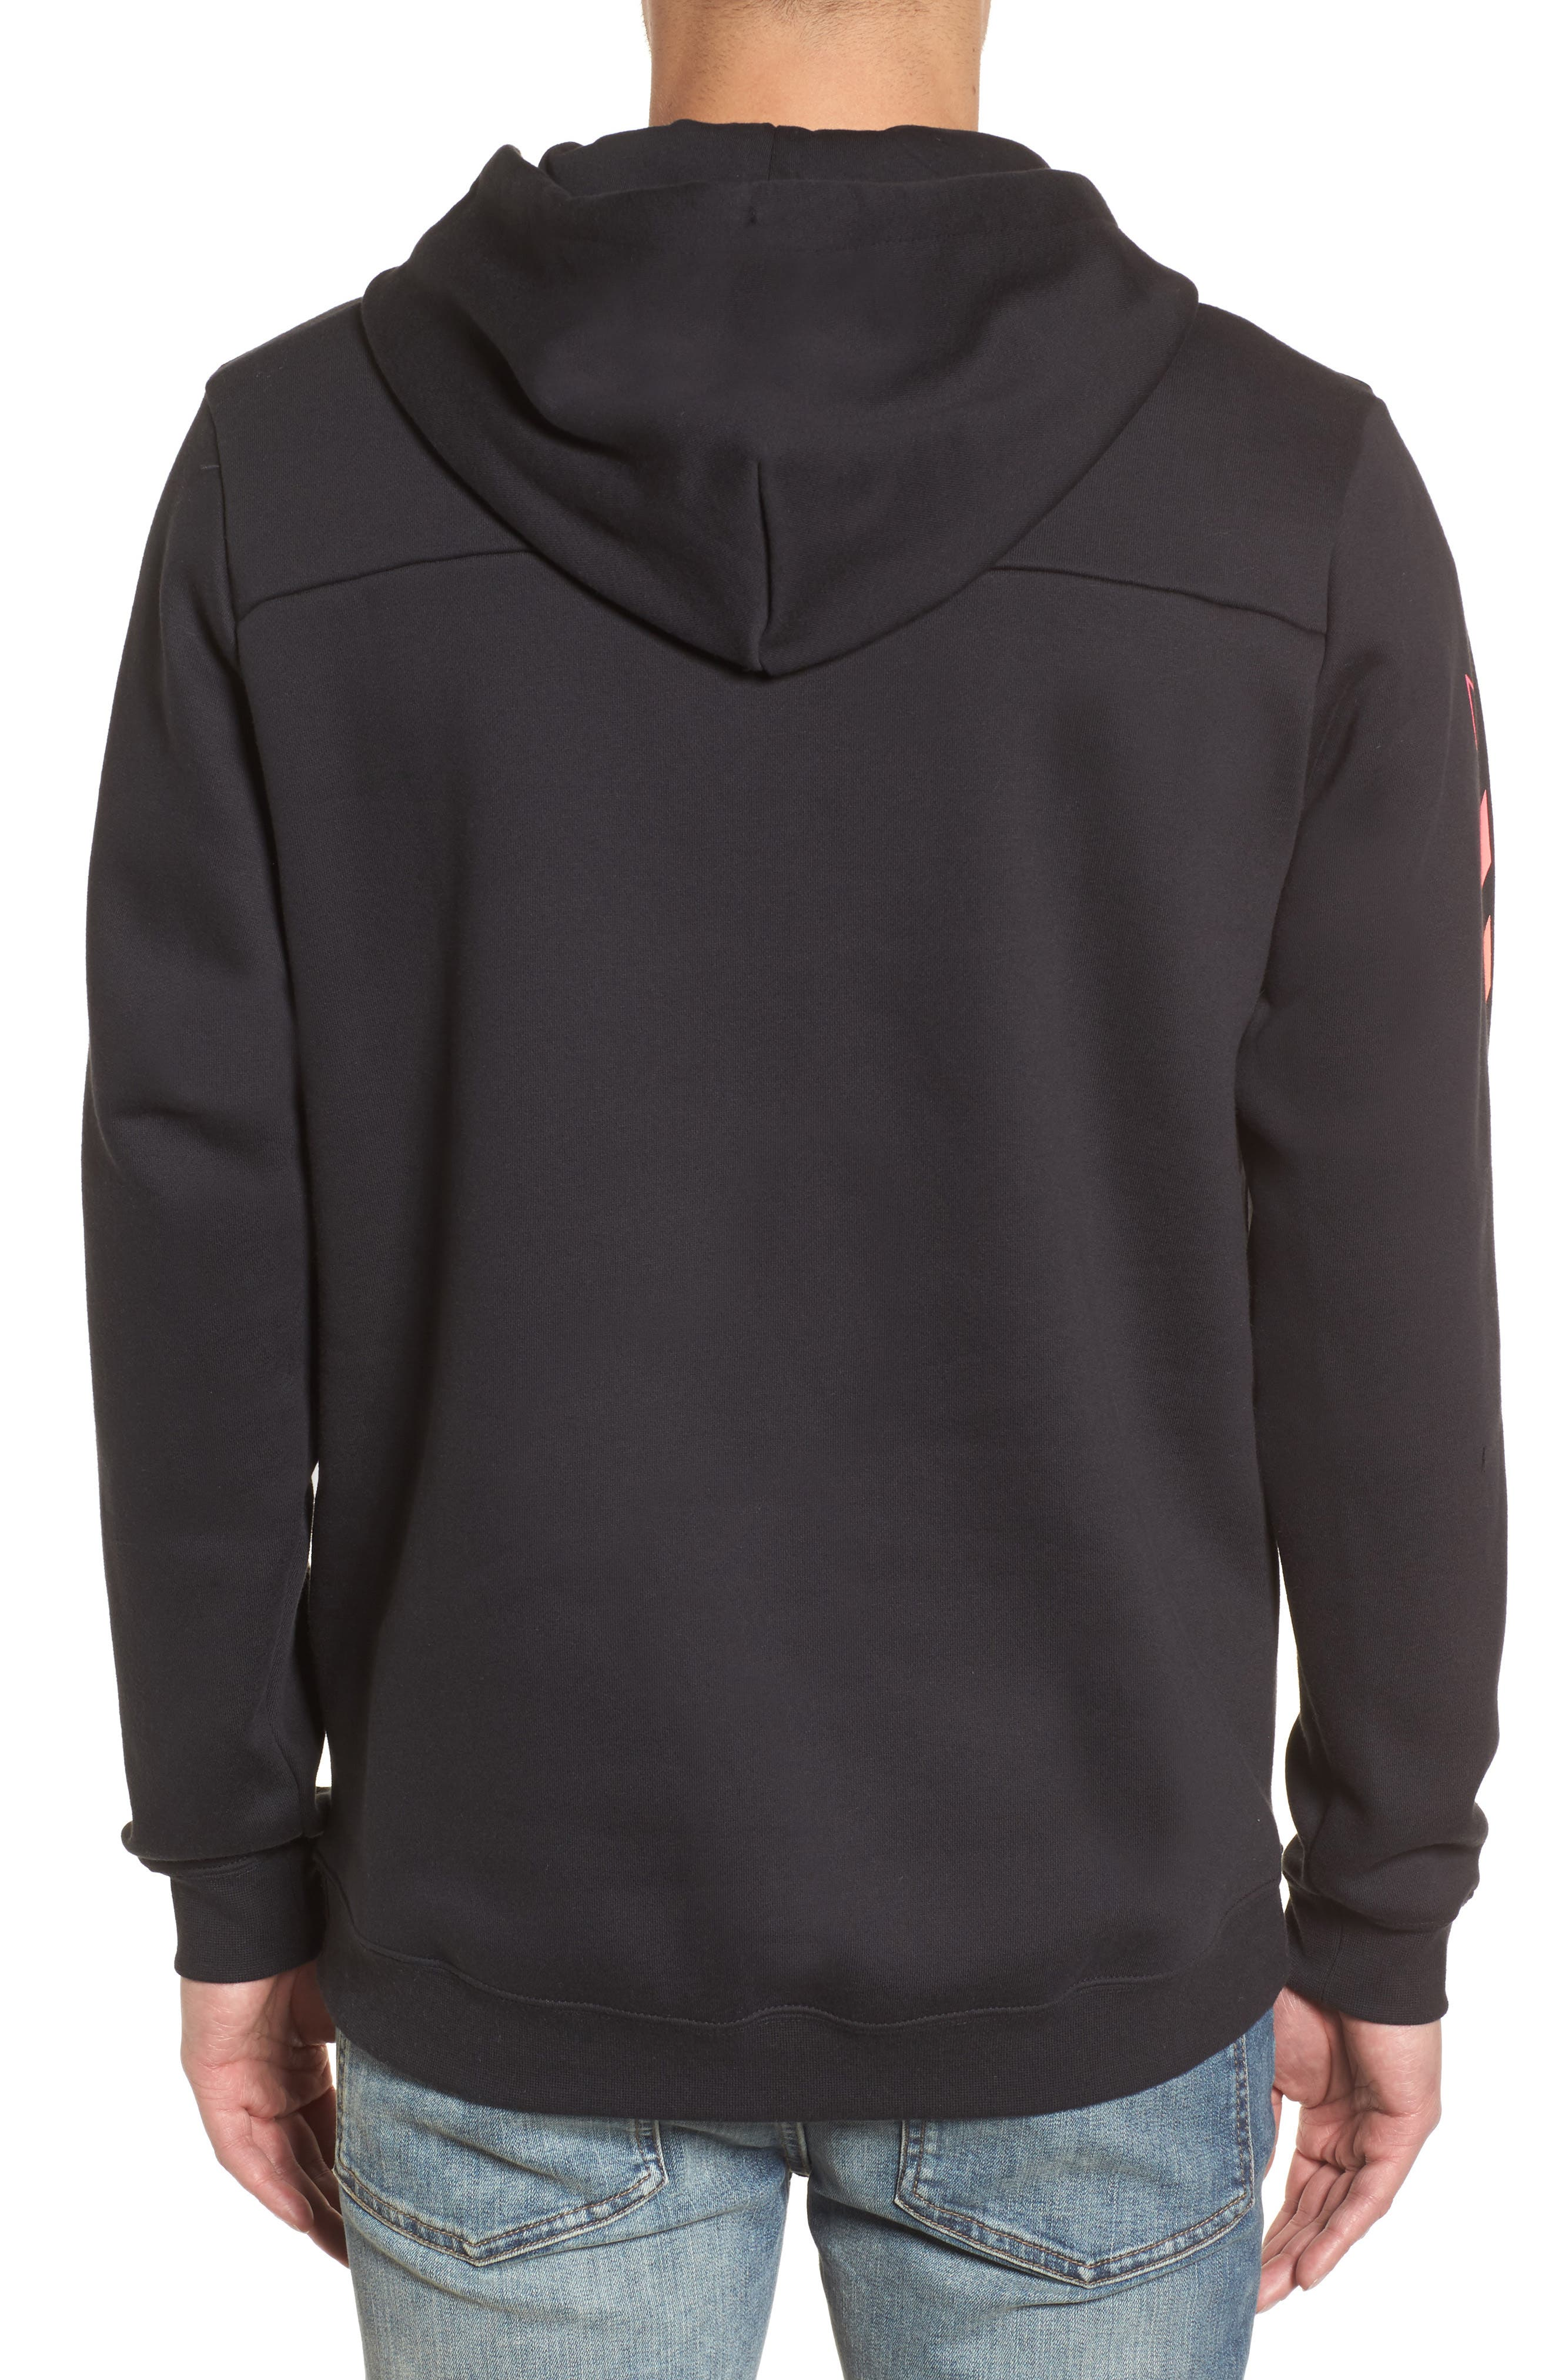 Surf Check Sig Zane Pullover Hoodie,                             Alternate thumbnail 2, color,